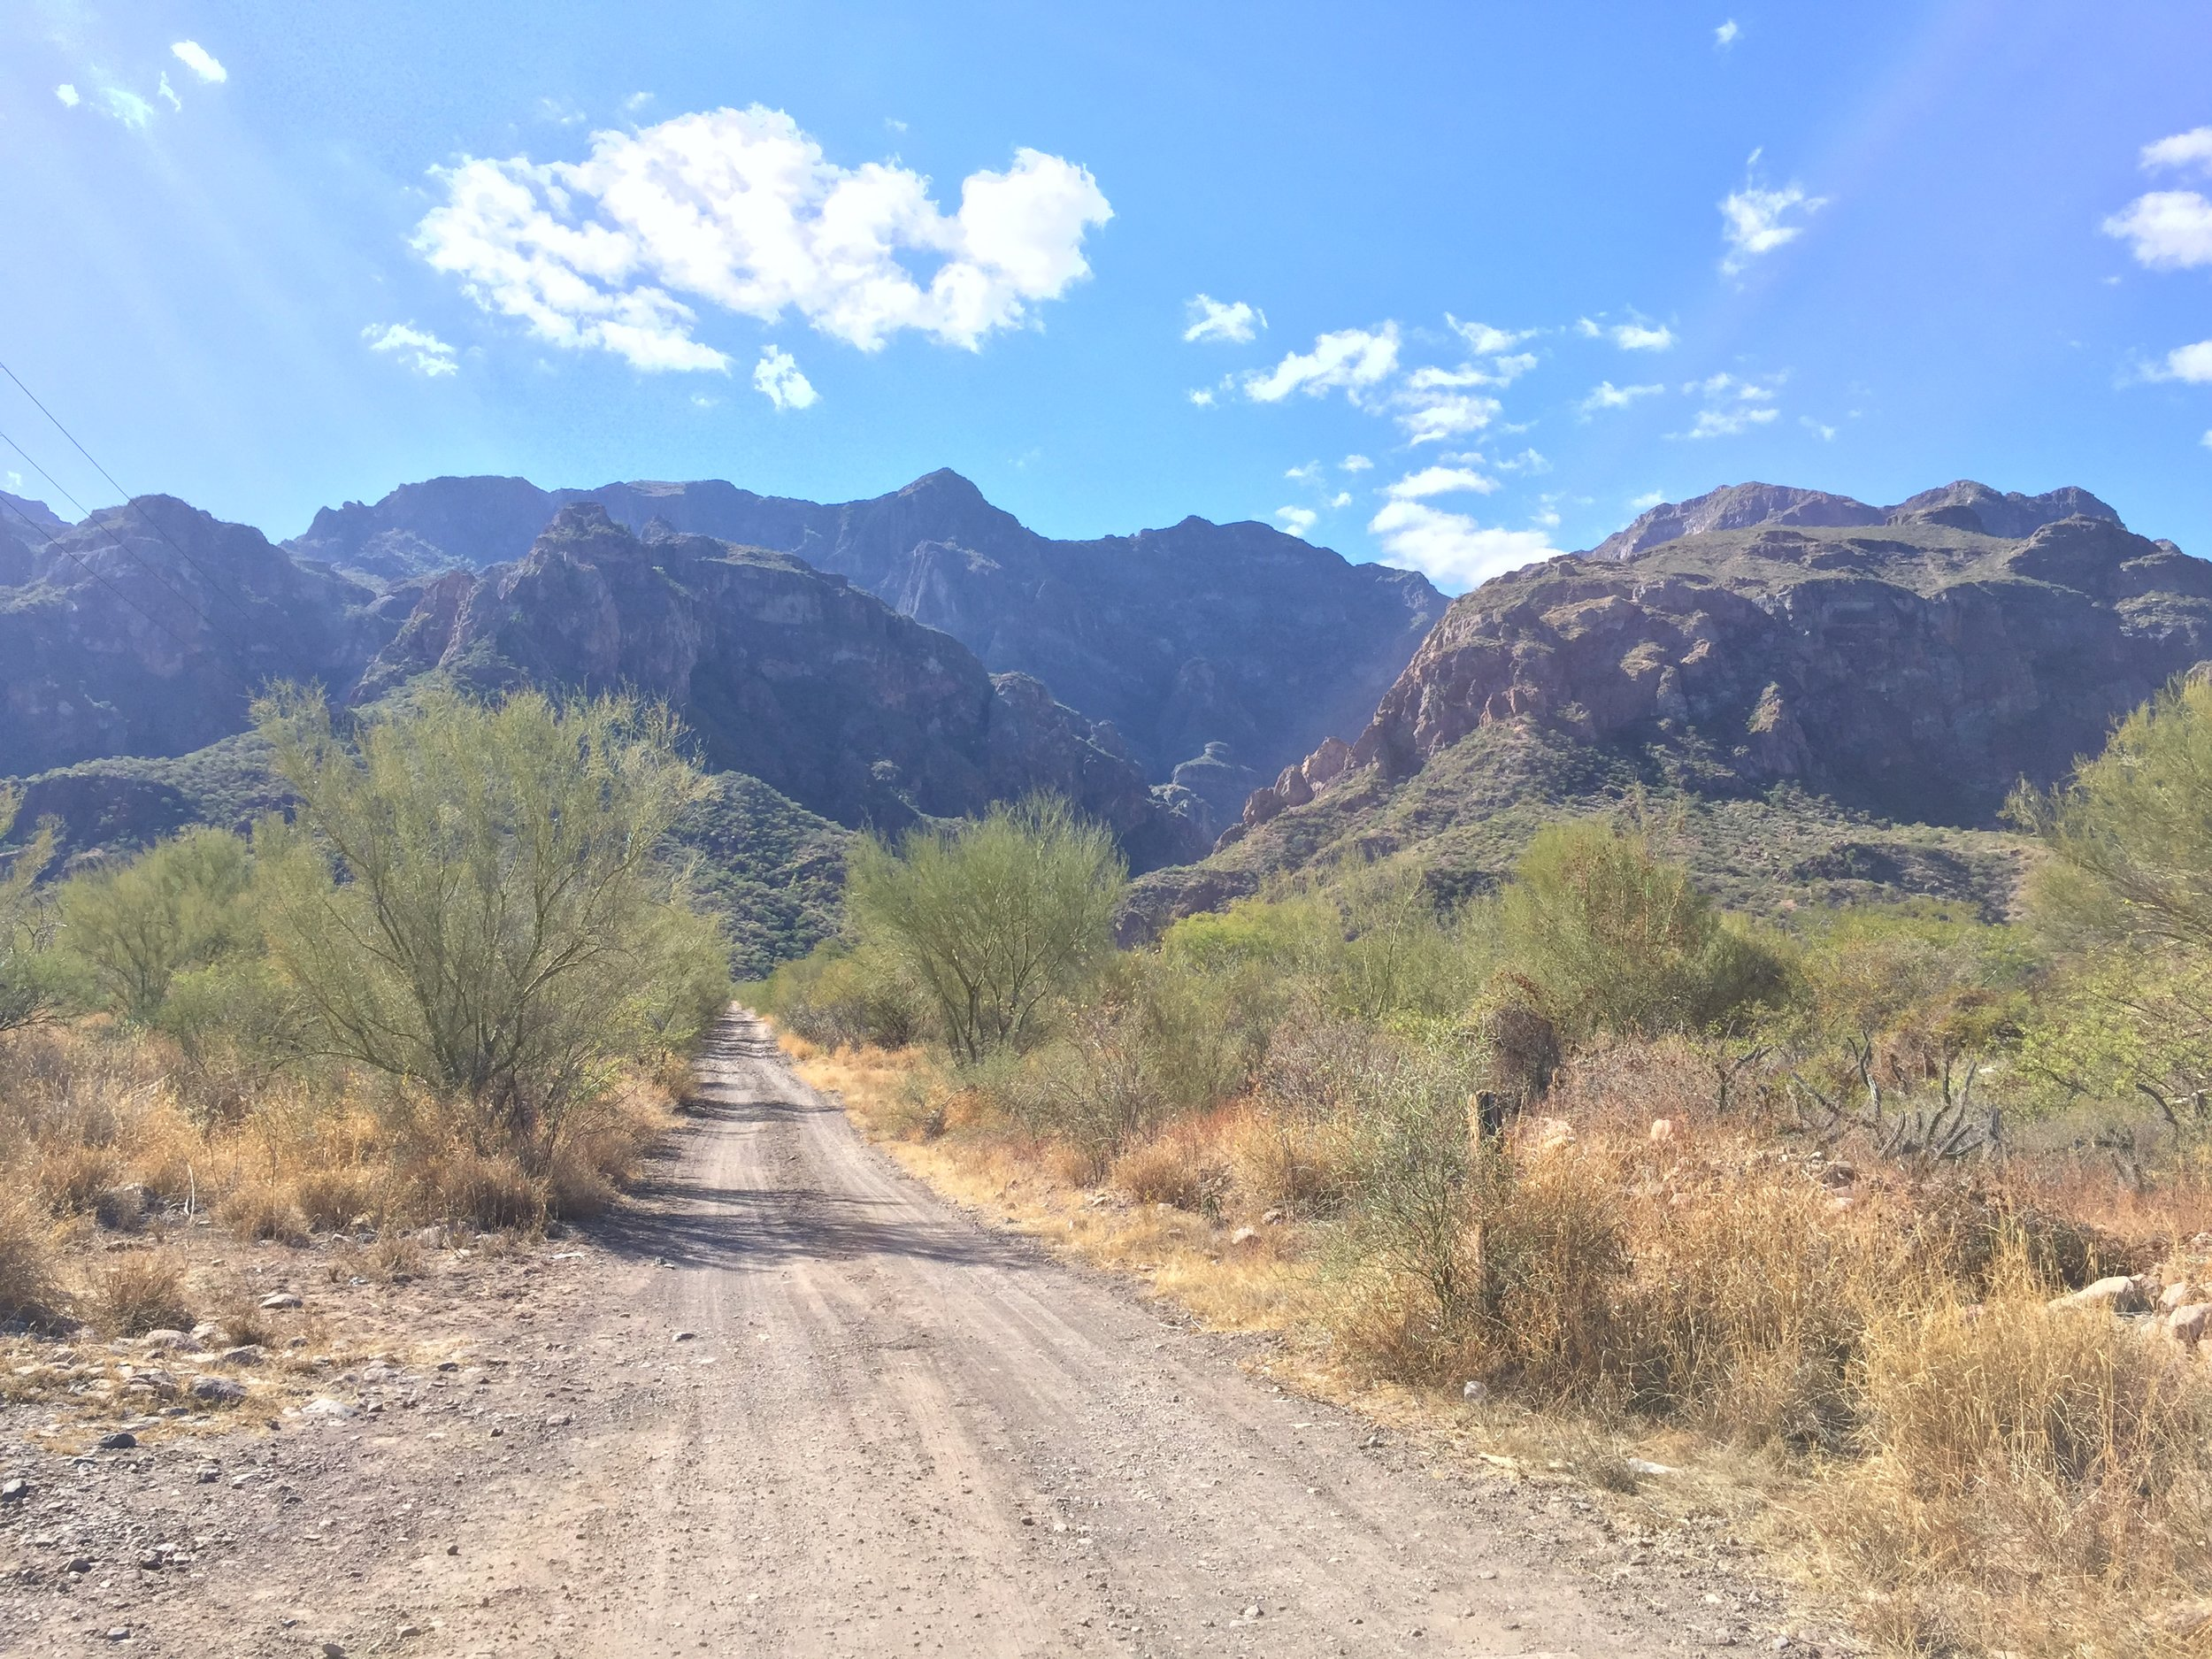 The road to the canyon, across from Rattlesnake beach.